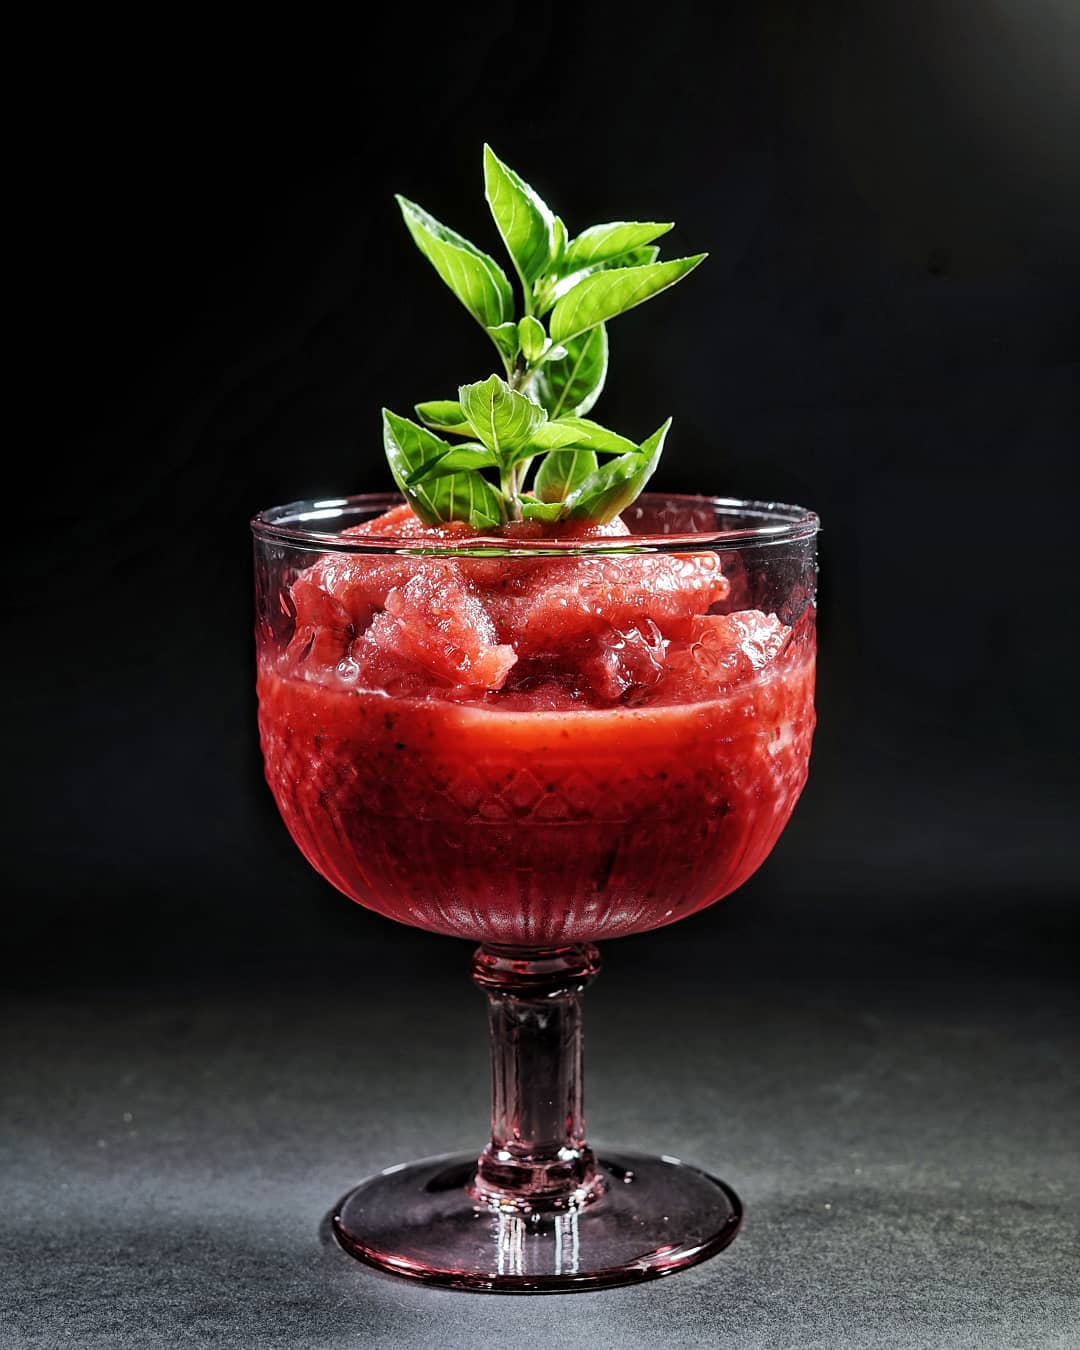 Strawberry & Basil Daiquiri.